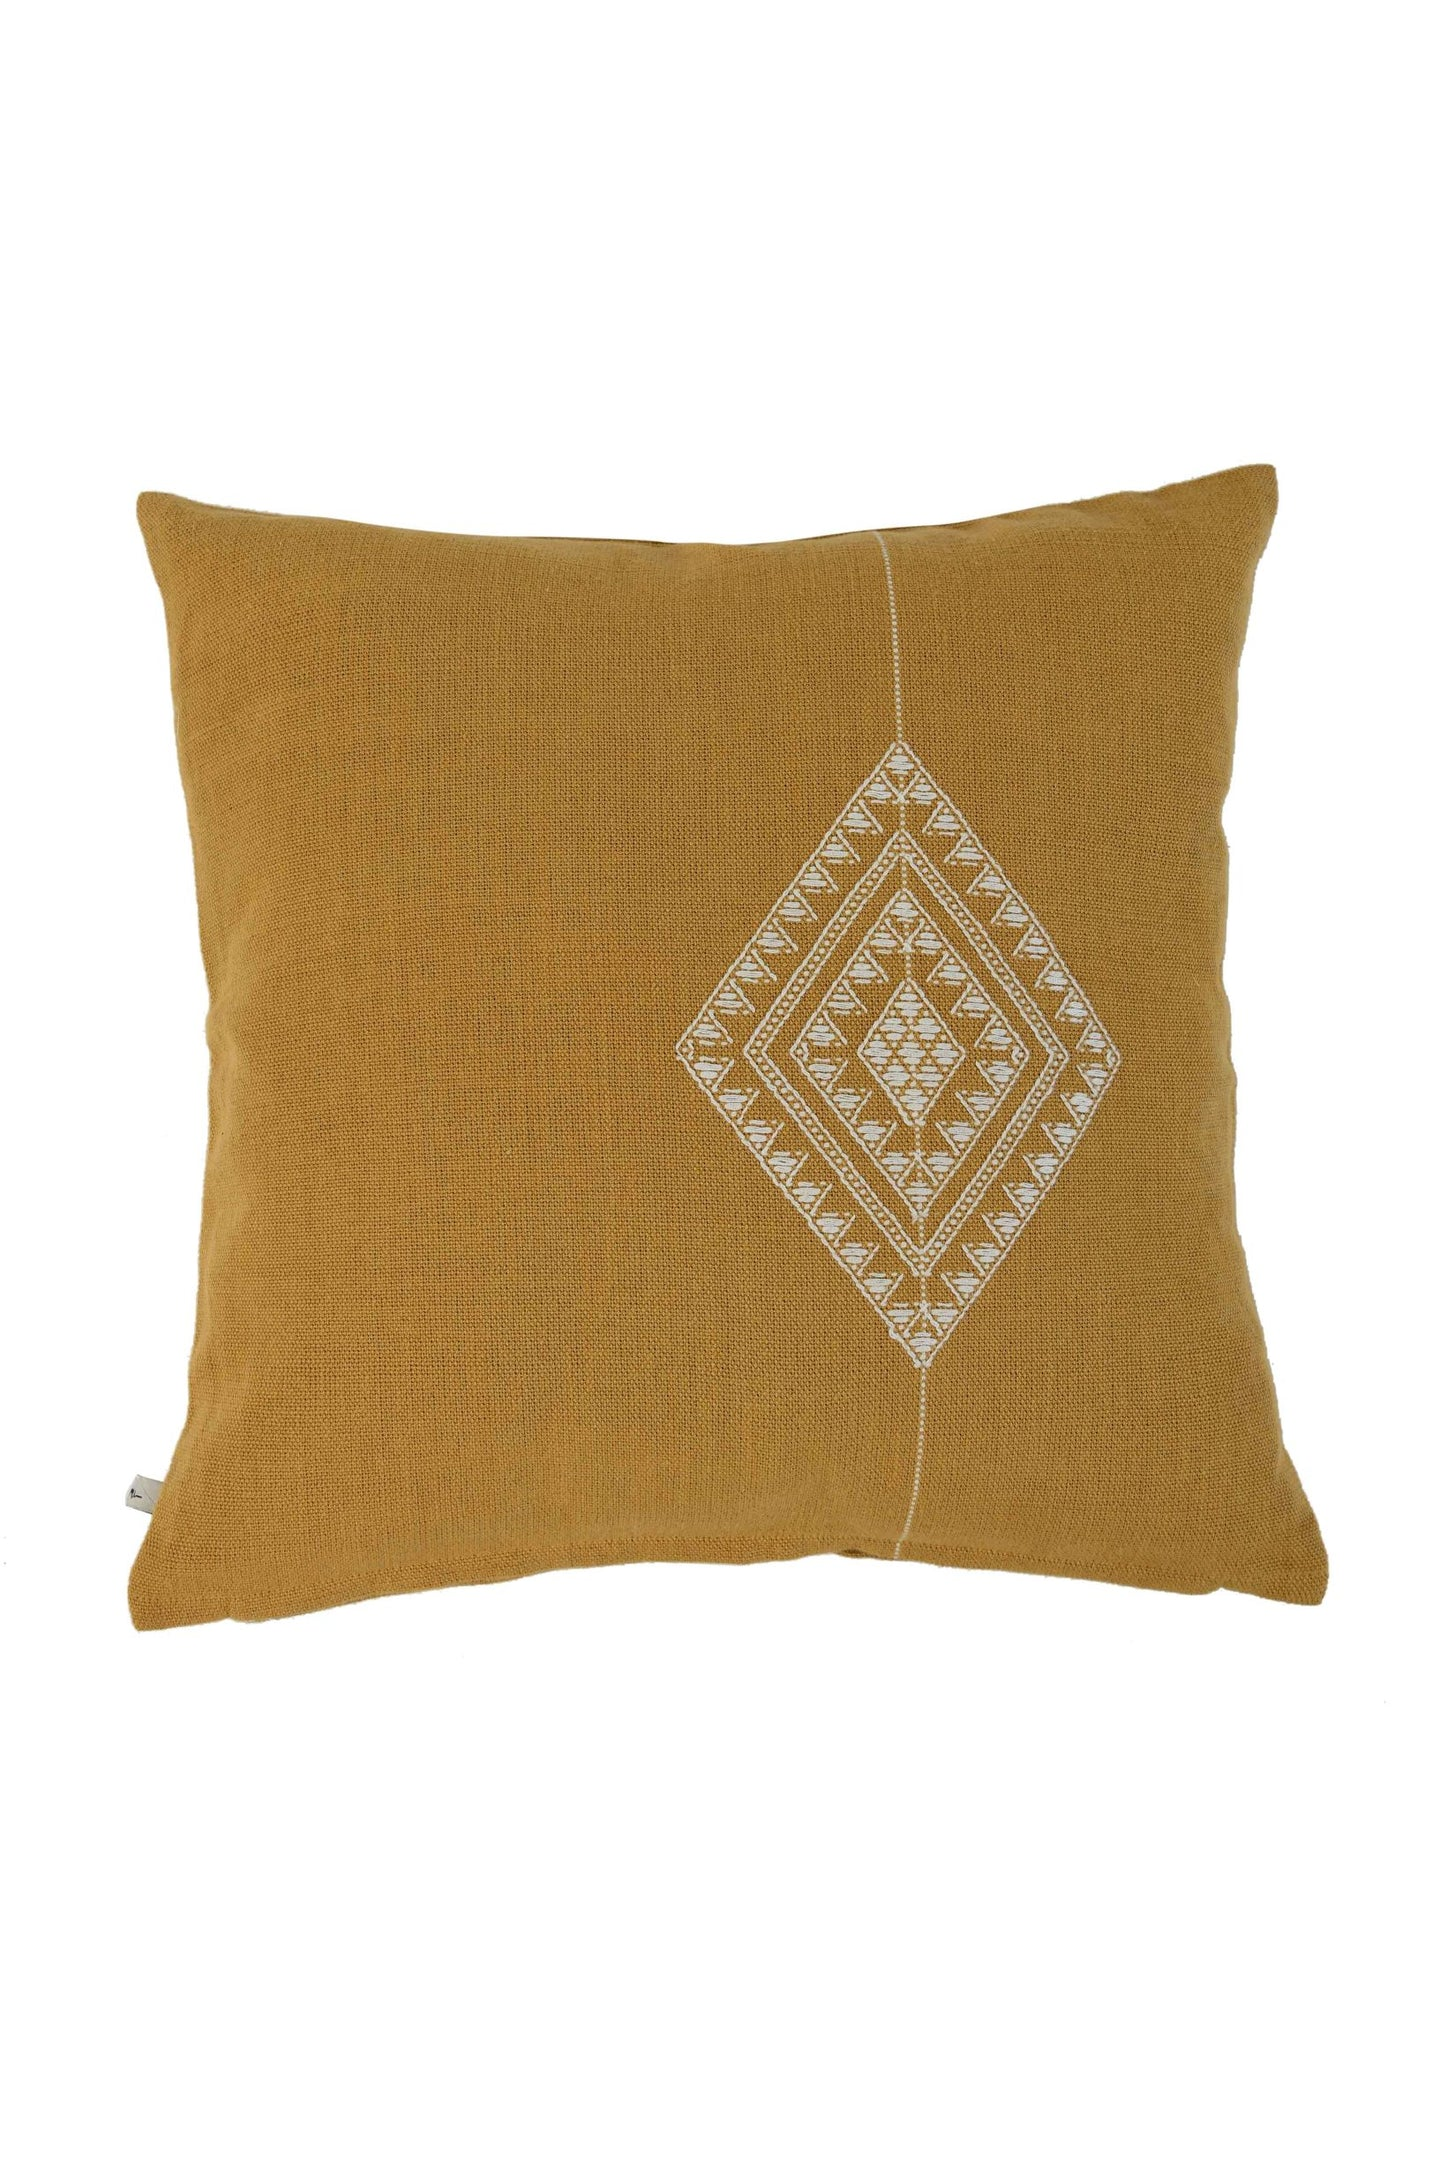 Mustard Yellow Diamond Extra Weft Hand Woven Cushion Cover